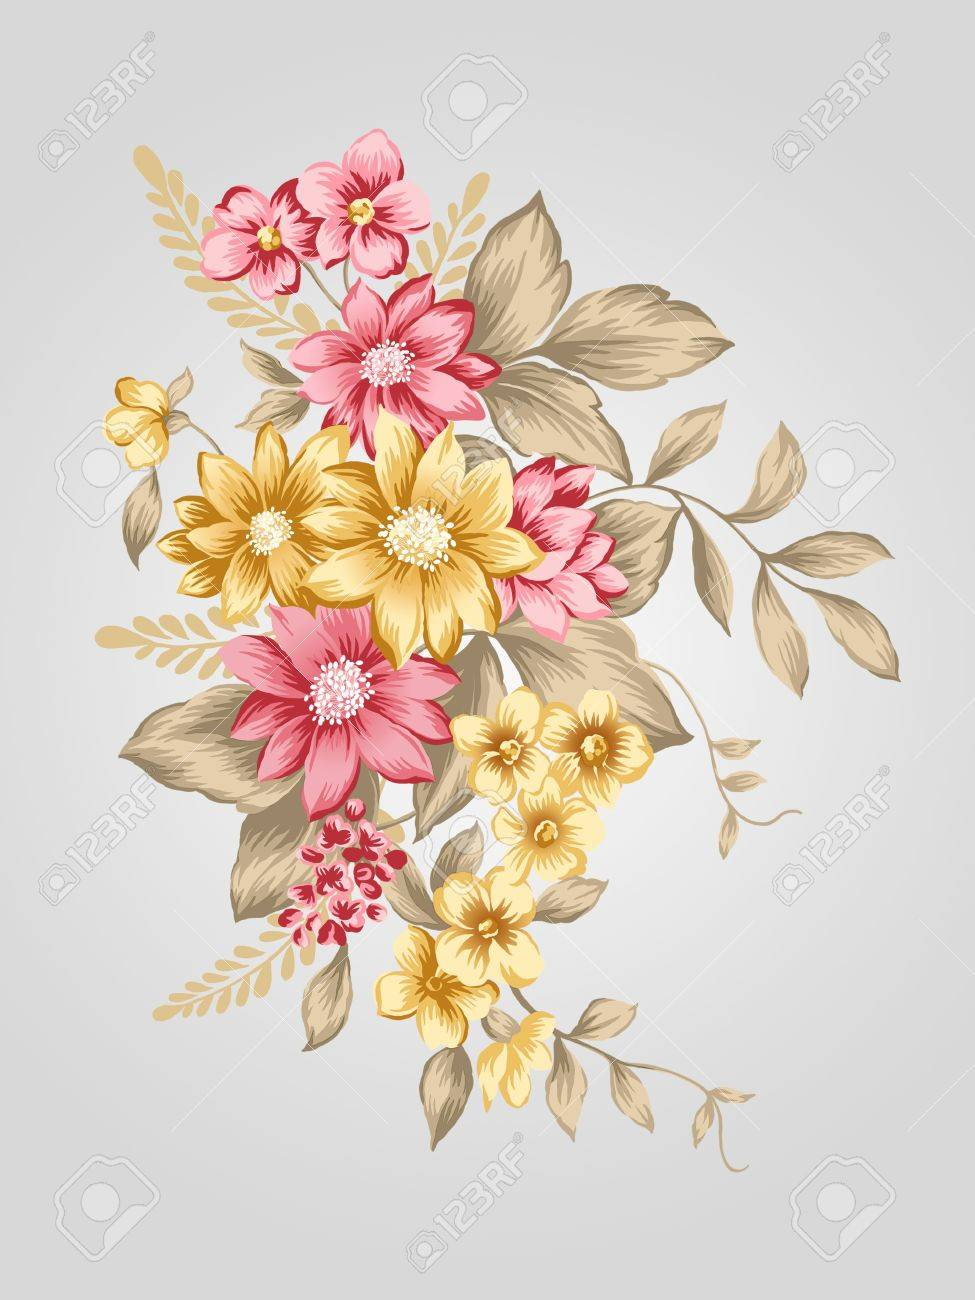 Beautiful Flower Bouquet Design Simple Background Stock Photo Picture And Royalty Free Image Image 12935524